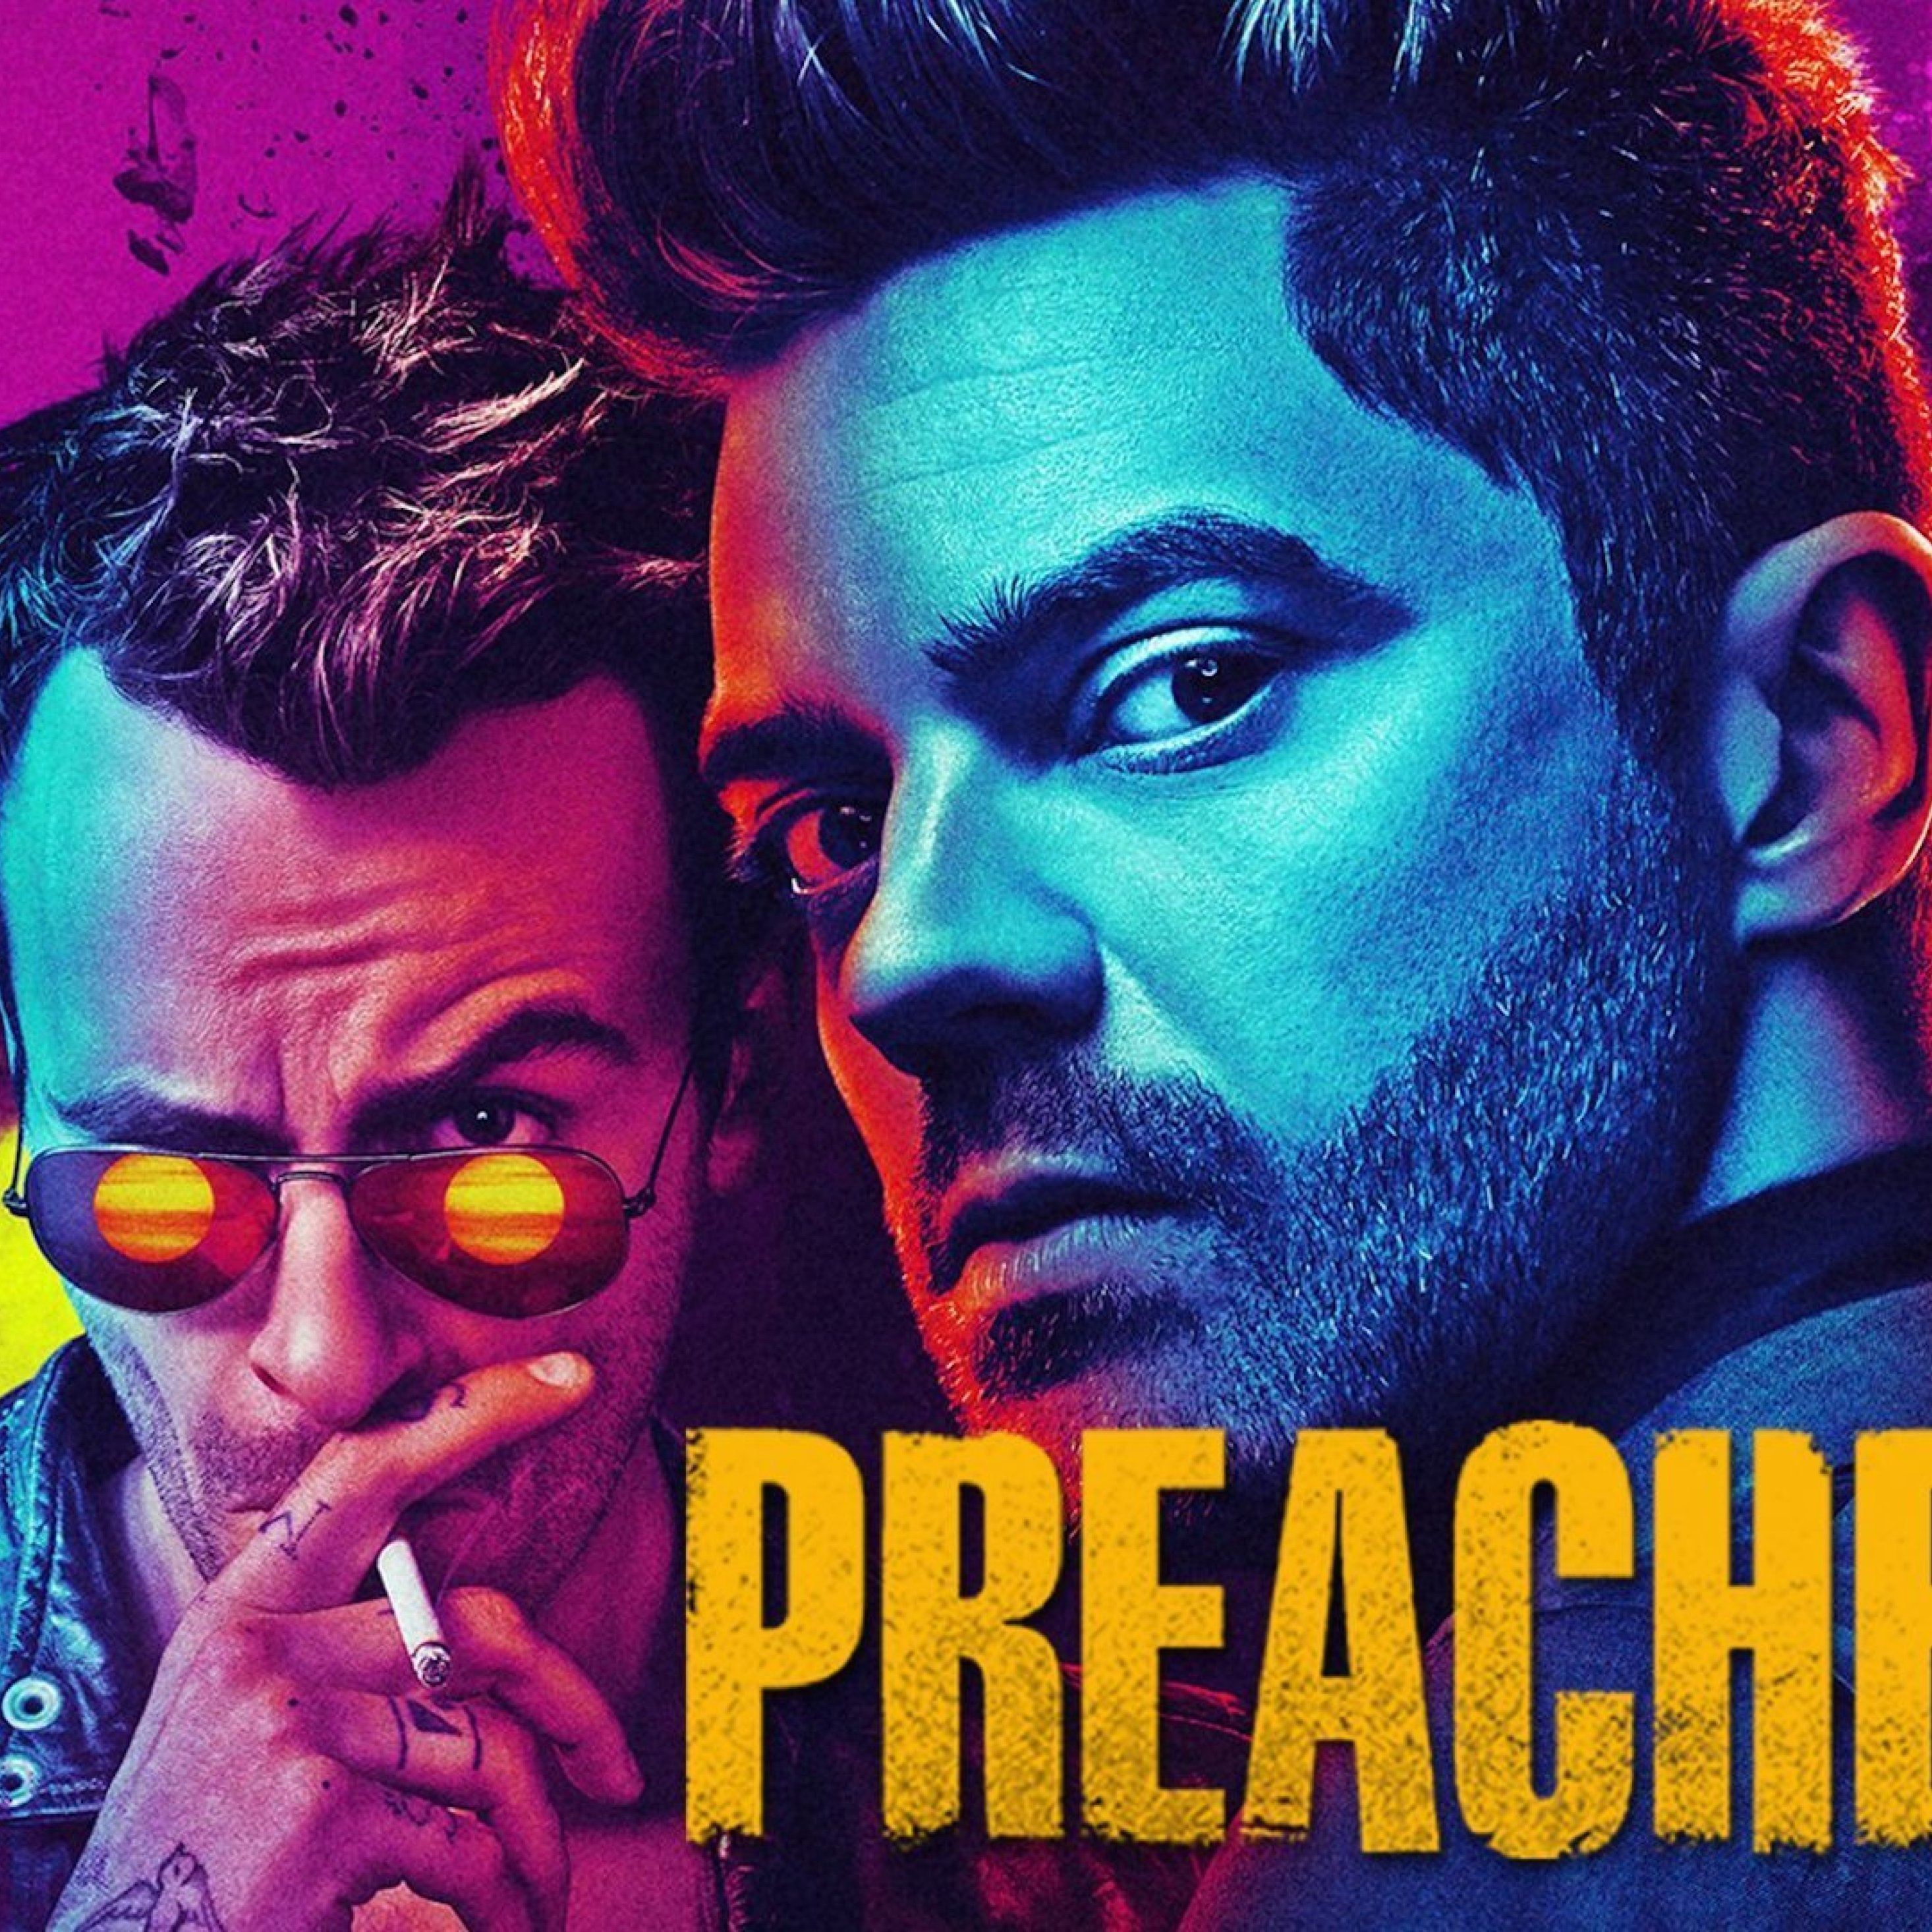 Preacher Tv Show, Full HD Wallpaper